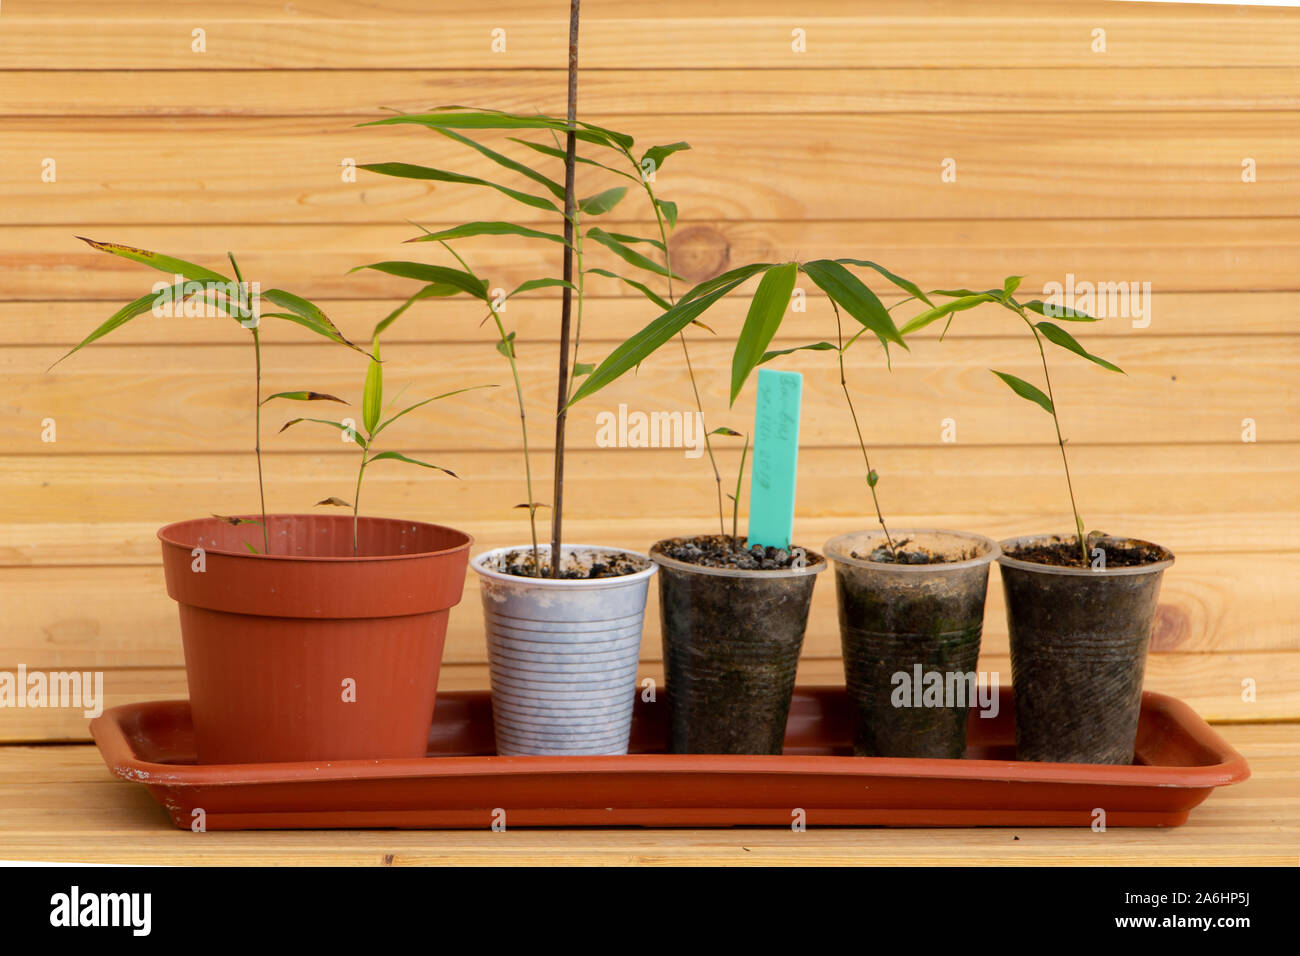 Comment Faire Pousser Bambou moso bamboo photos & moso bamboo images - alamy